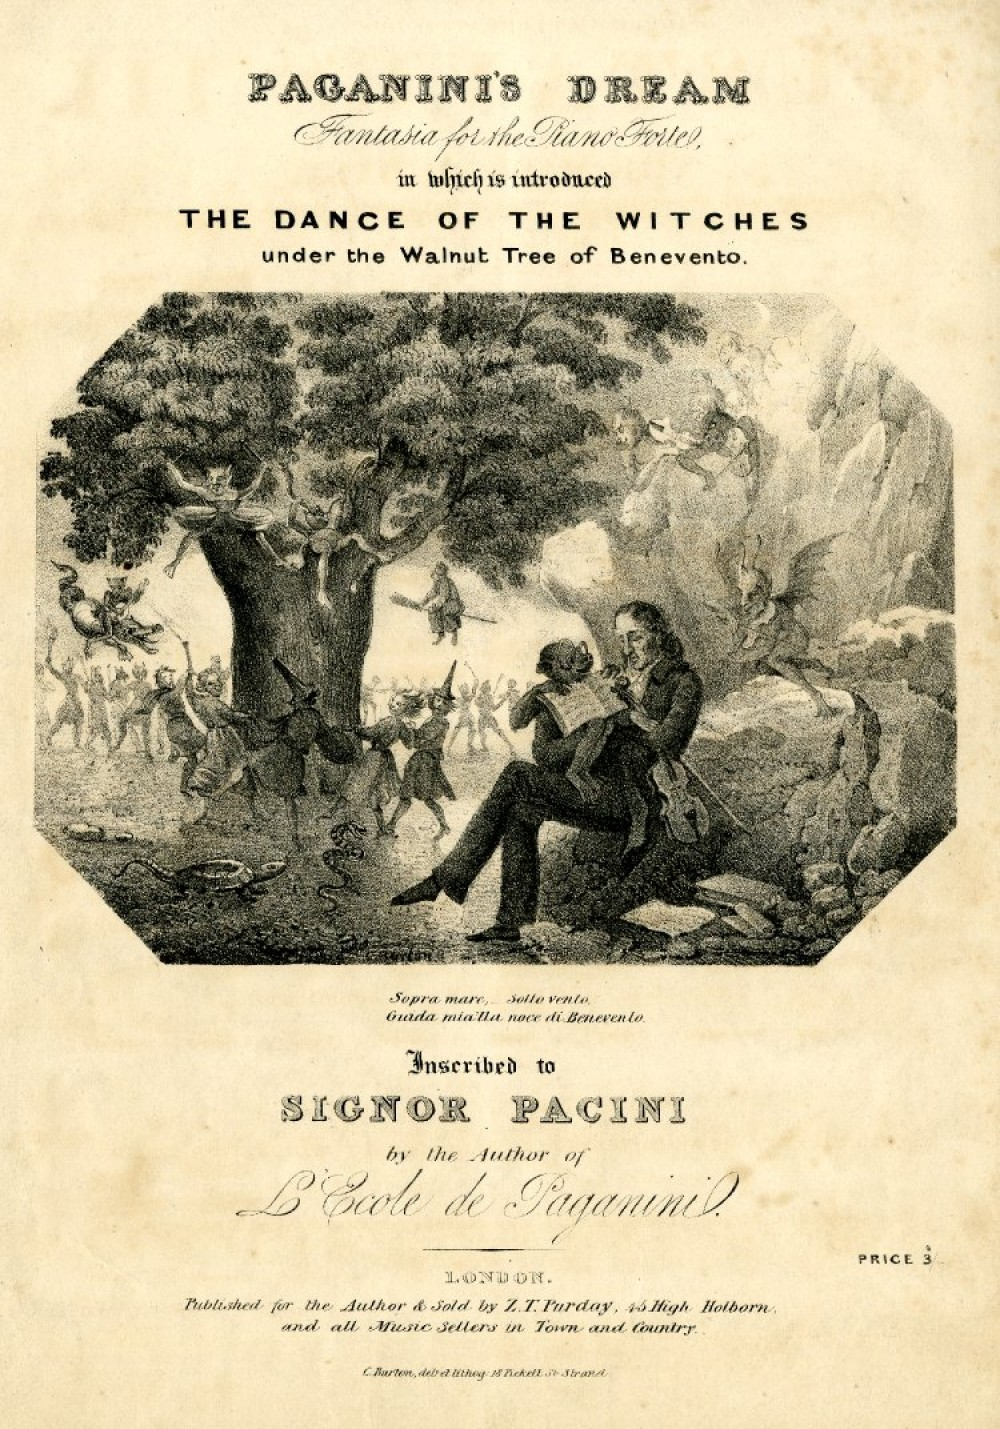 Paganini's Dream, fantasia for the Piano-Forte, in which is introduced The Dance of the Witches under the Walnut Tree of Benevento. Song sheet title by composer Niccolò Paganini (printed 1830-1835) – The Trustees of the British Museum